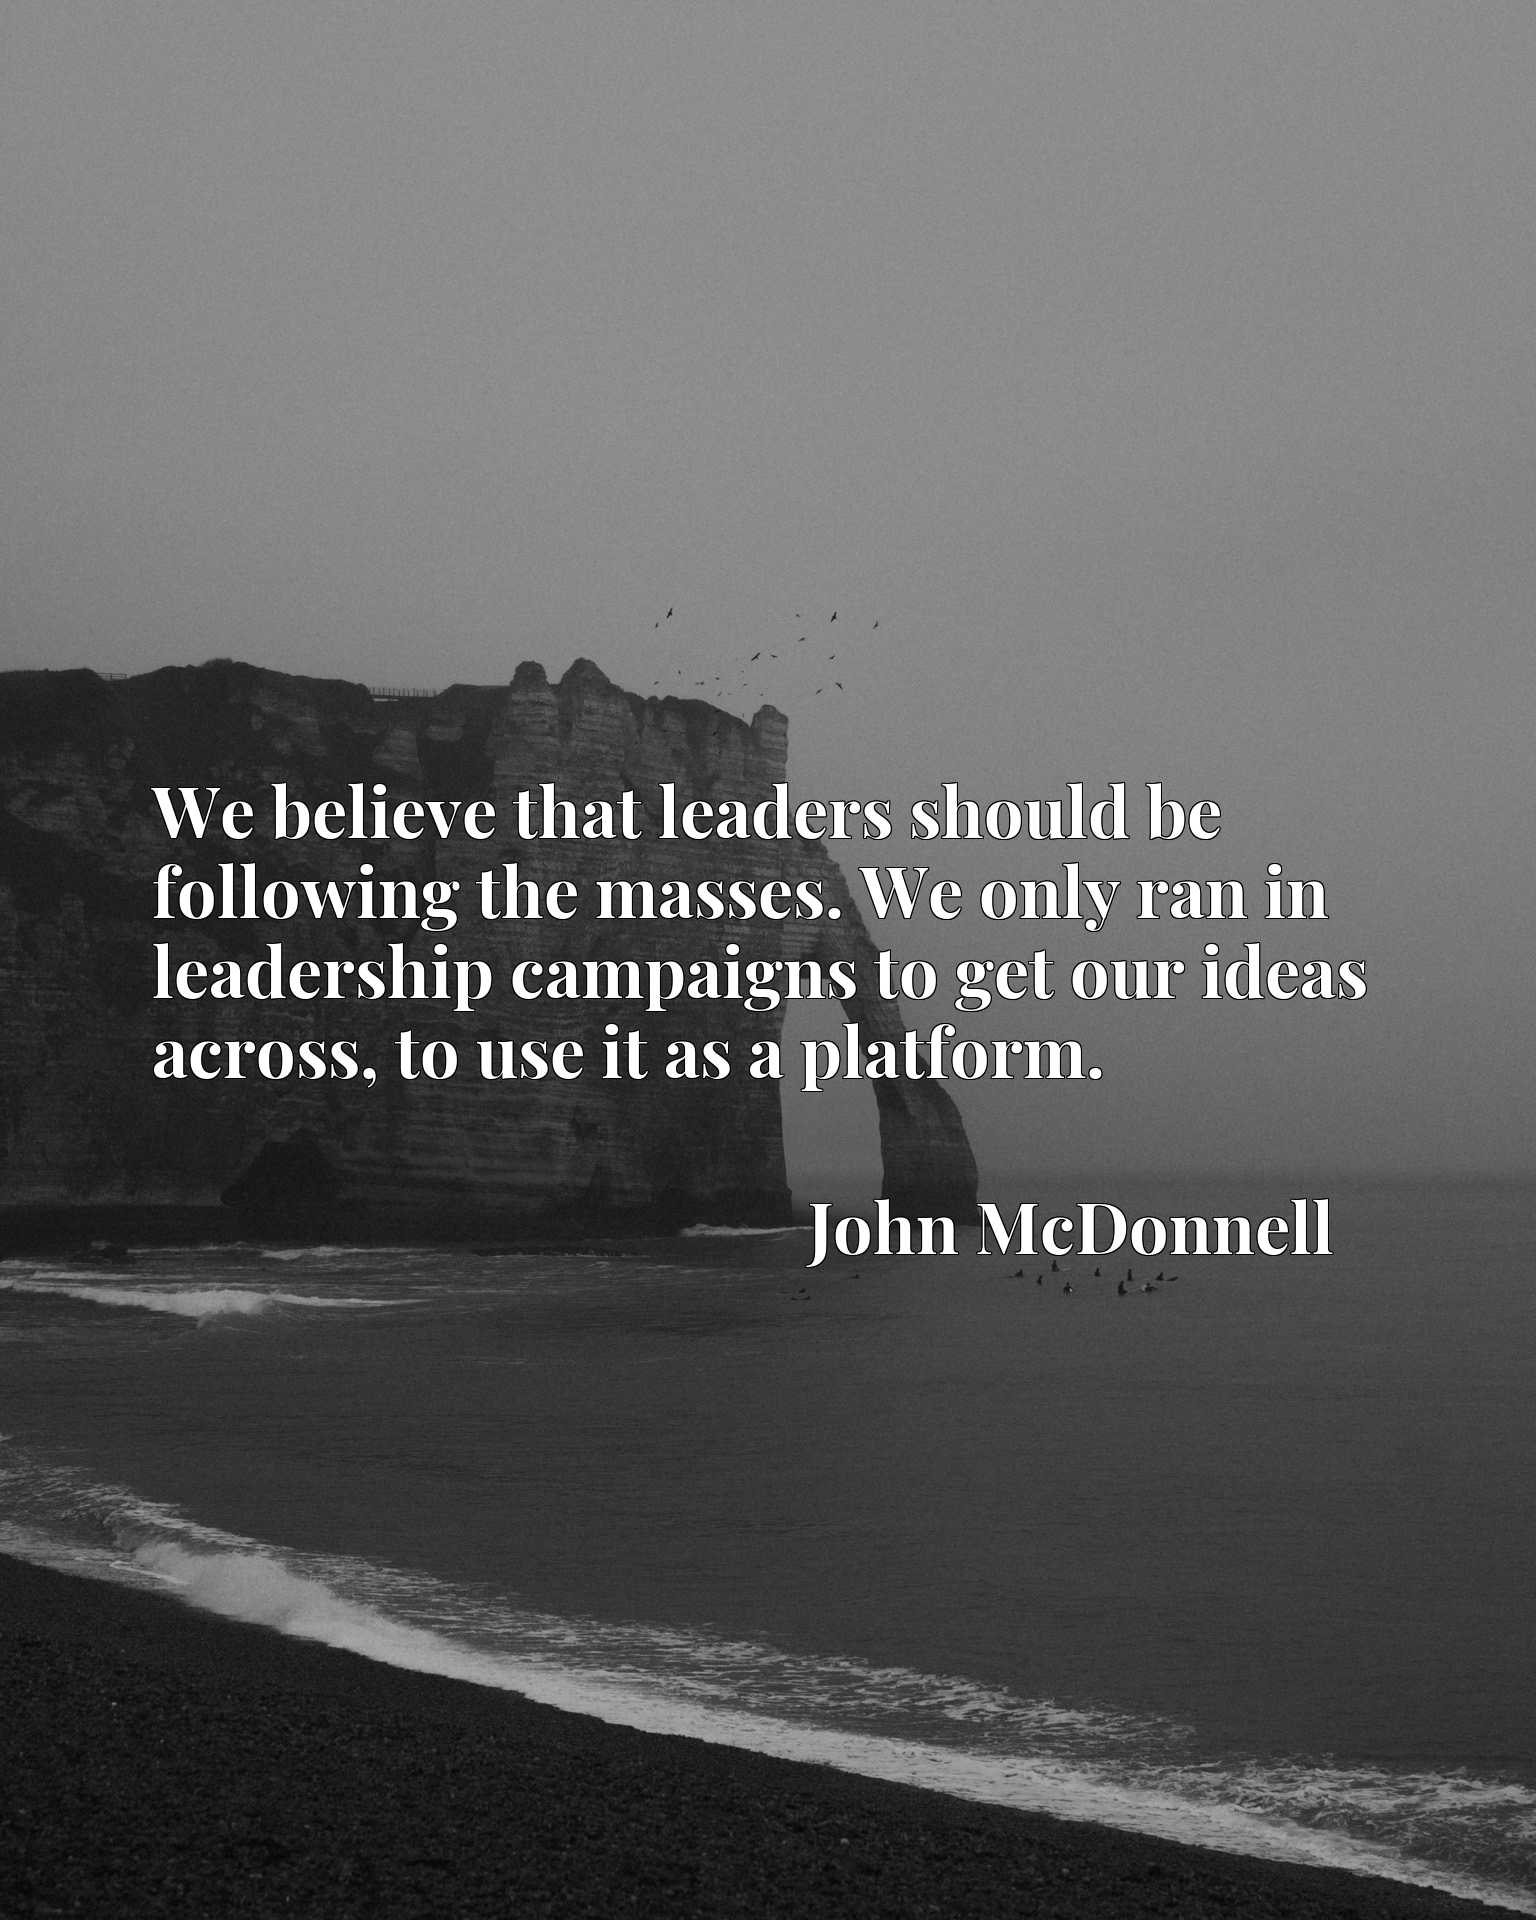 Quote Picture :We believe that leaders should be following the masses. We only ran in leadership campaigns to get our ideas across, to use it as a platform.